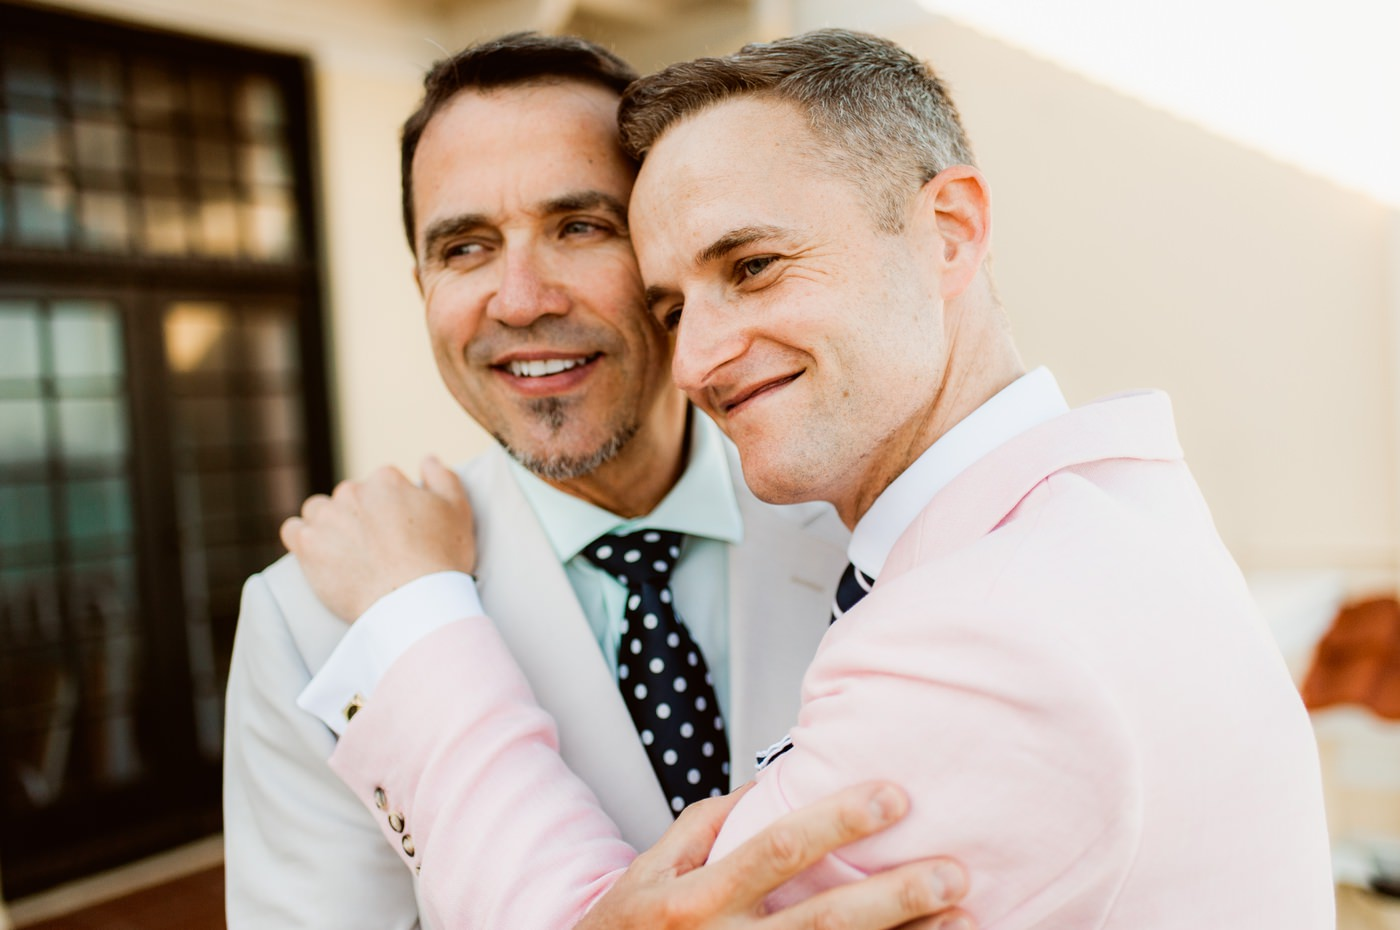 LGBT wedding photographer